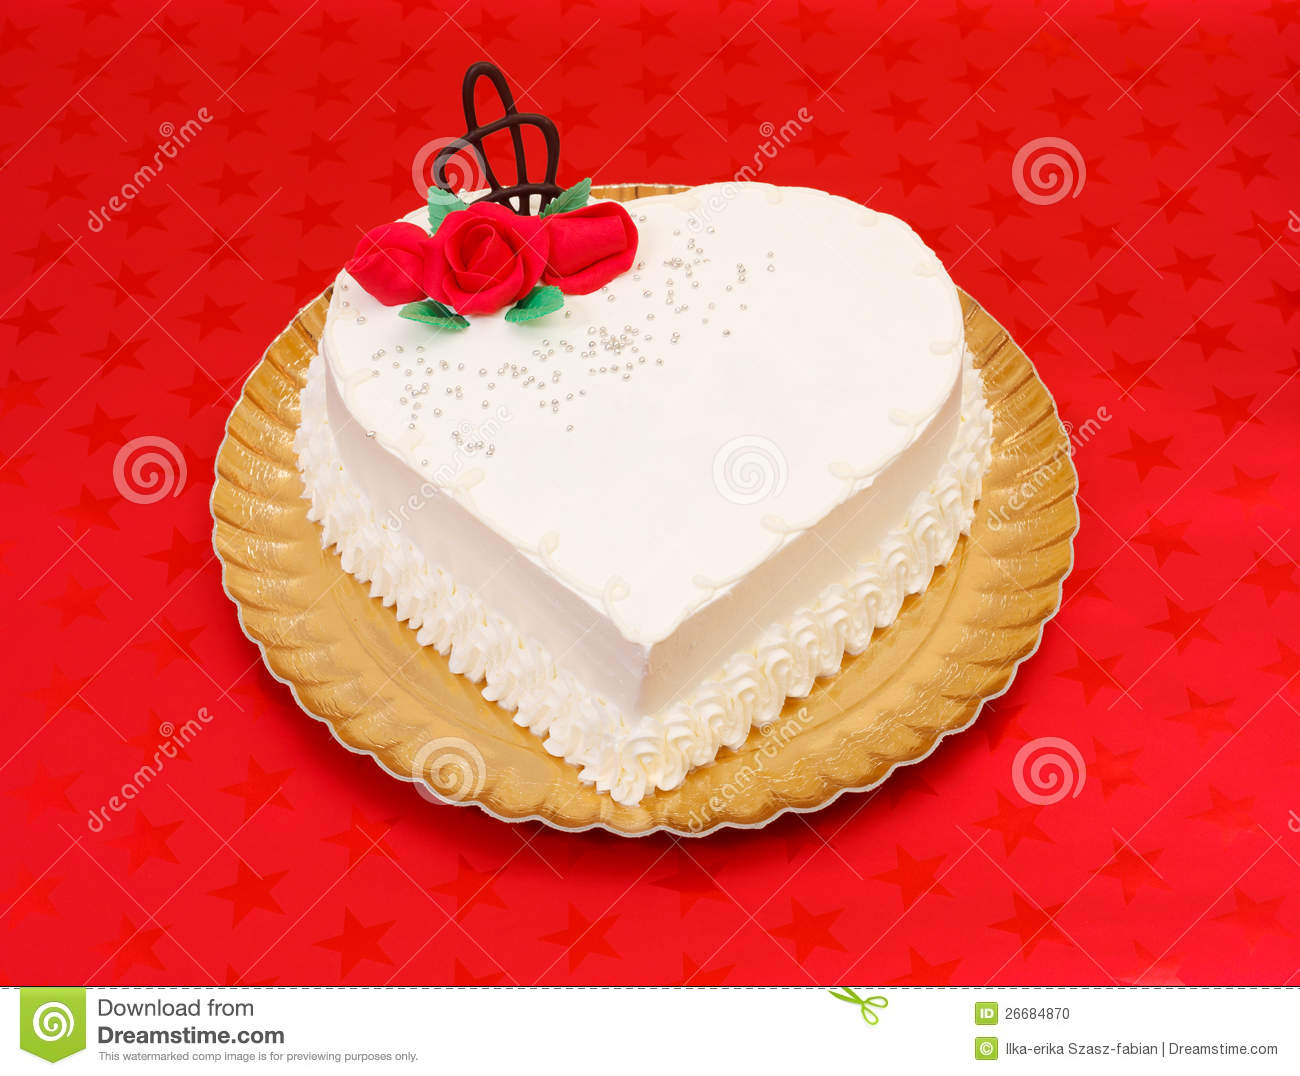 Heart Shaped Cake Stock Photos : White Heart Shape Cake Stock Photo - Image: 26684870